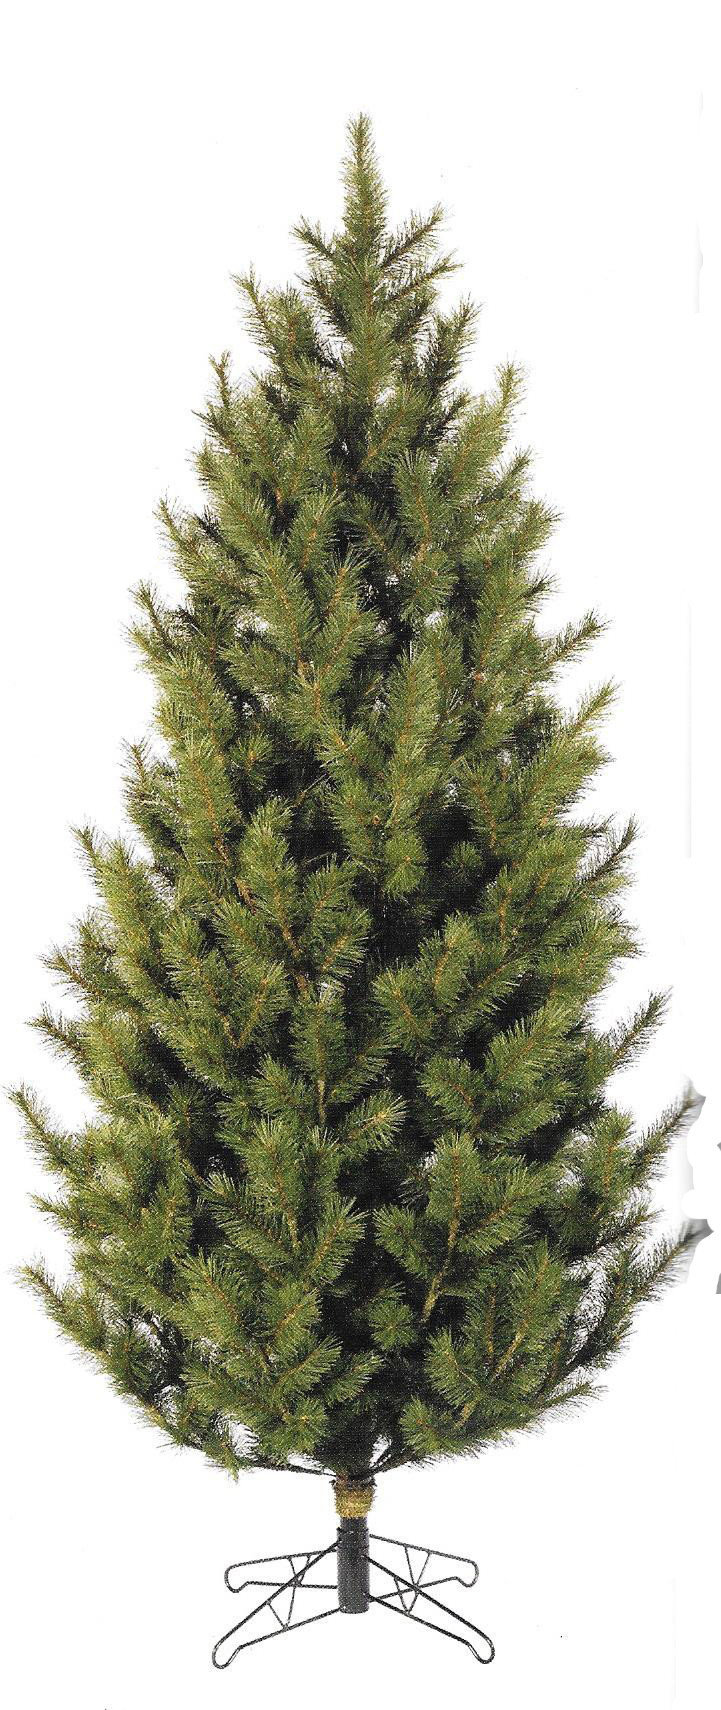 Cayote Pine - Full sized tree